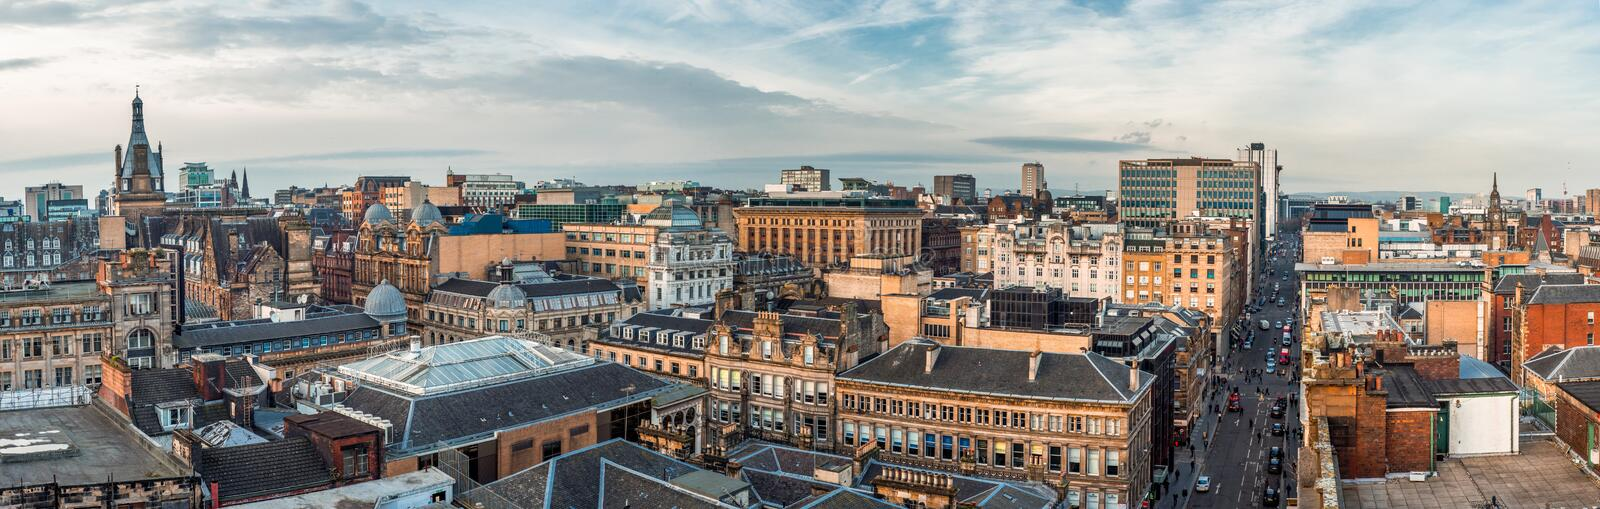 A wide panoramic looking out over old and new buildings and streets in Glasgow city centre. Scotland, United Kingdom. Glasgow / Scotland - February 15, 2019: A royalty free stock photography